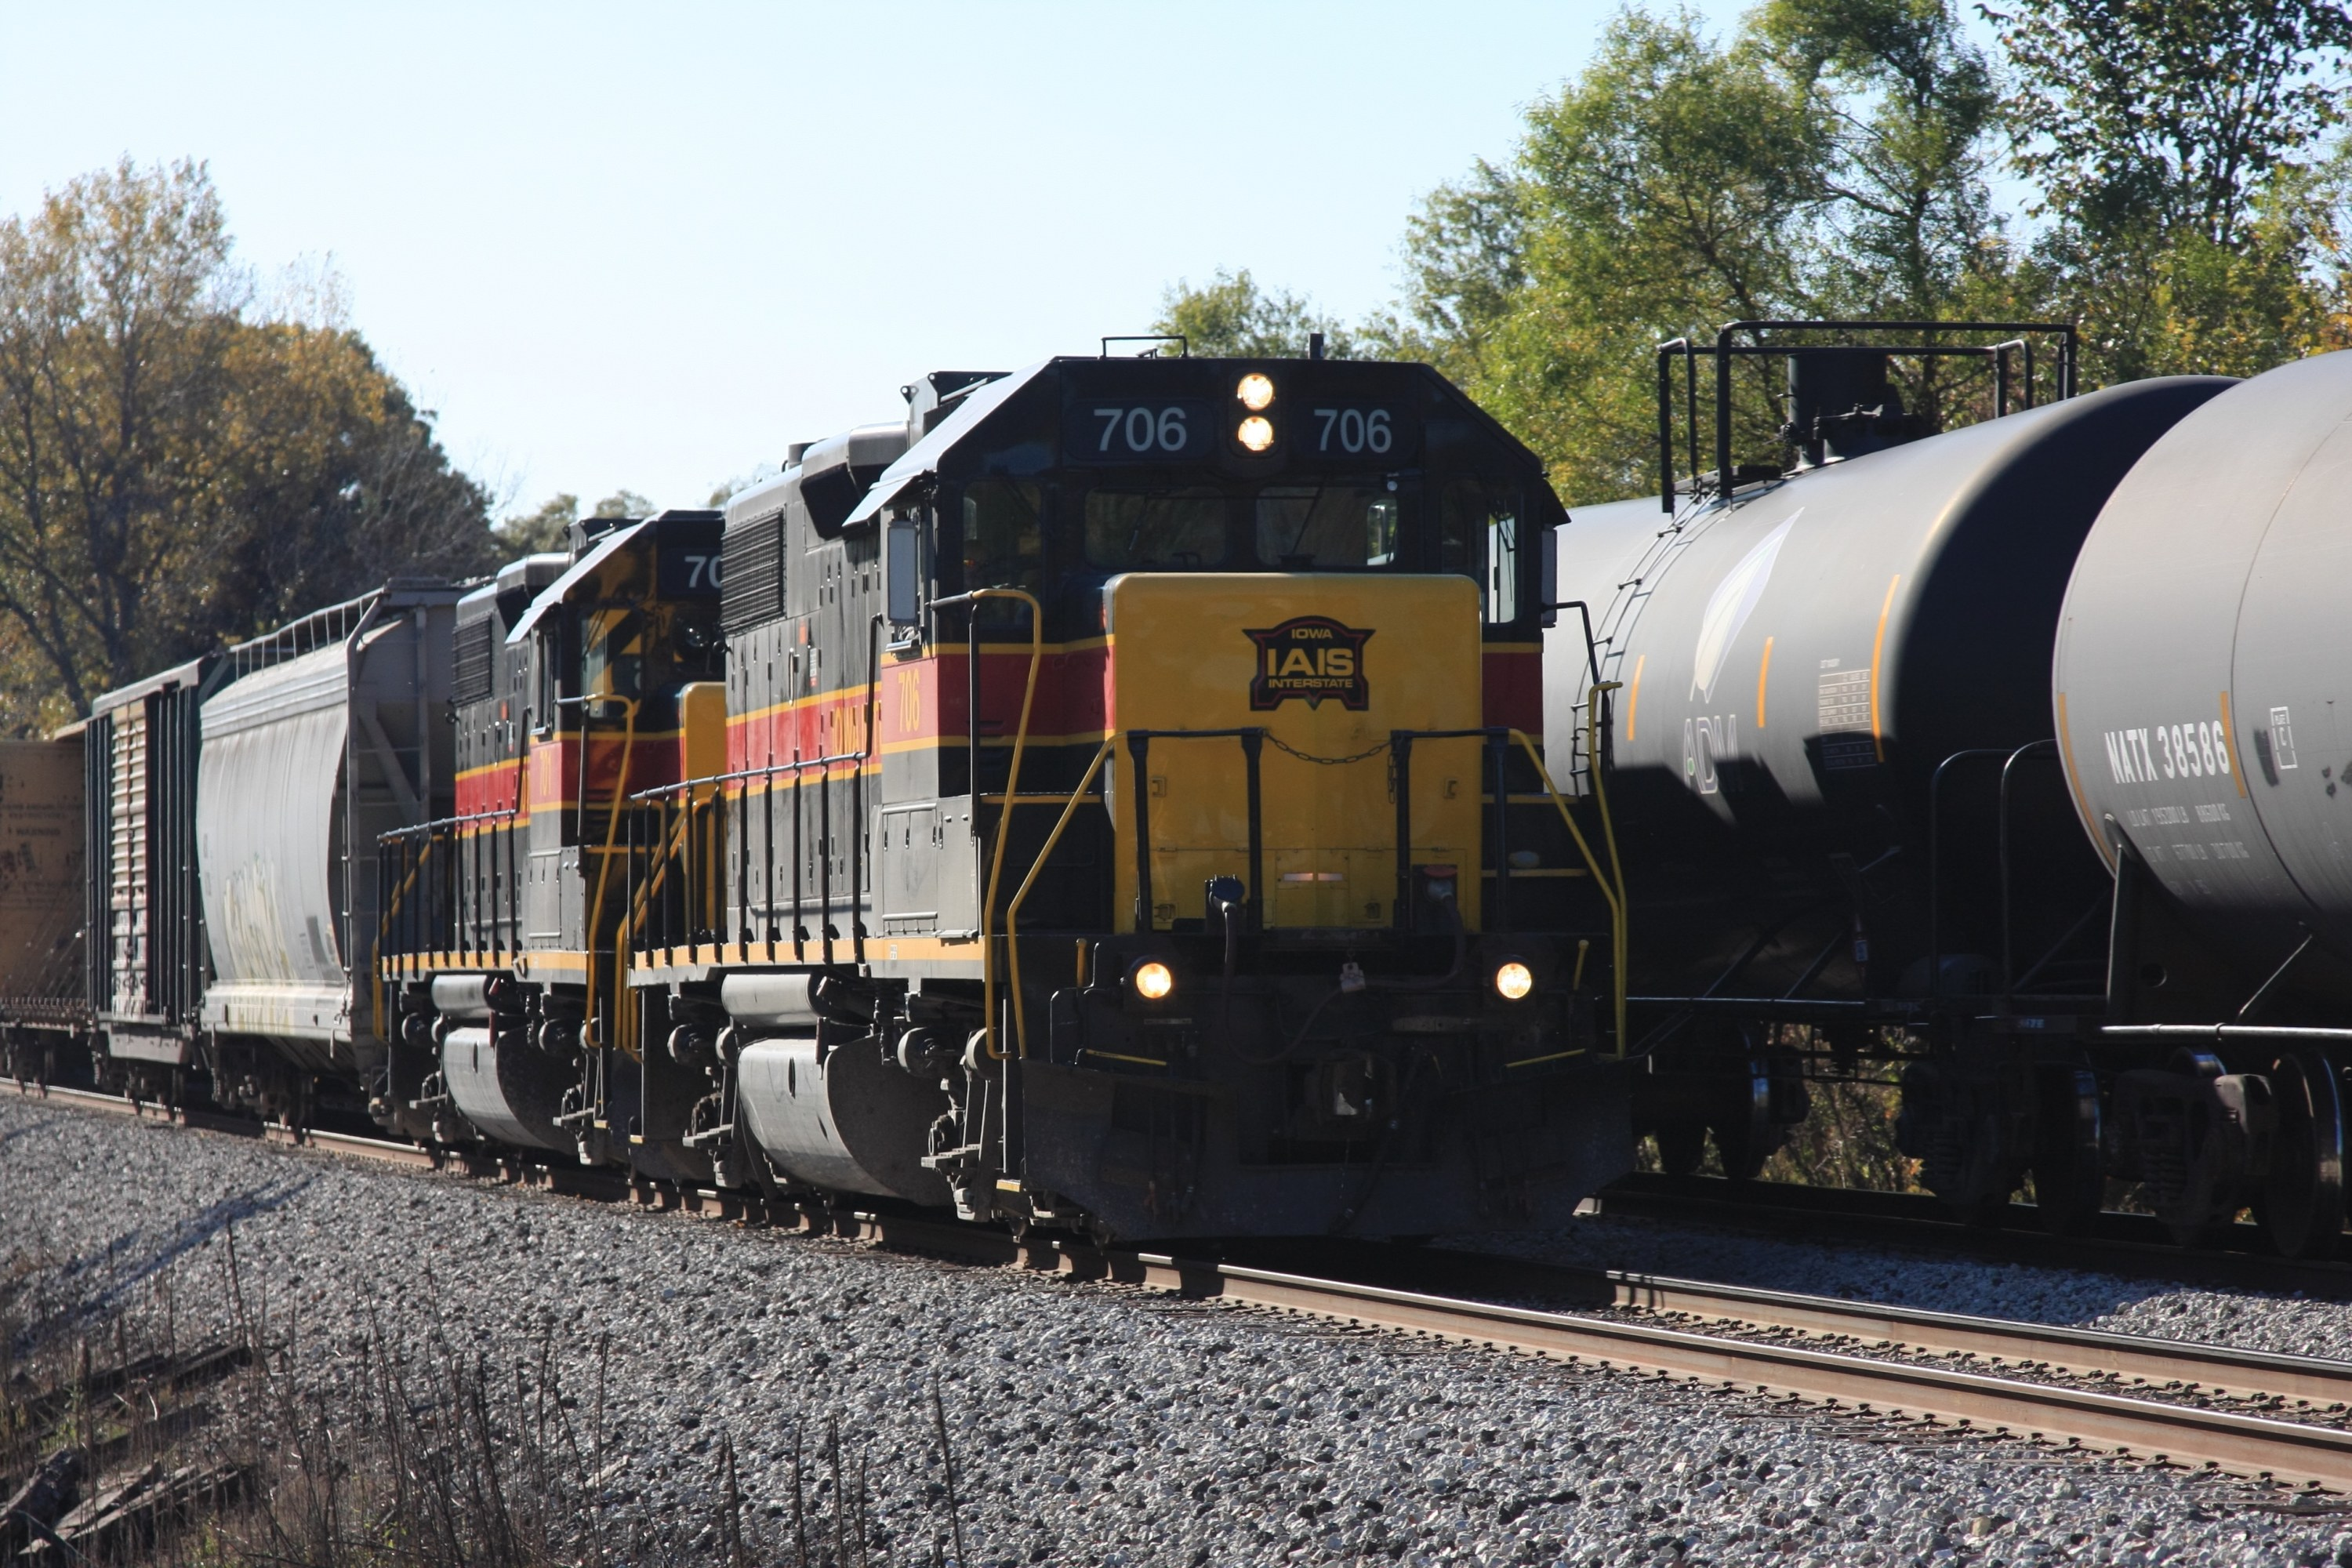 CBBI picked up the 701 off the work train and met the turn at North Star